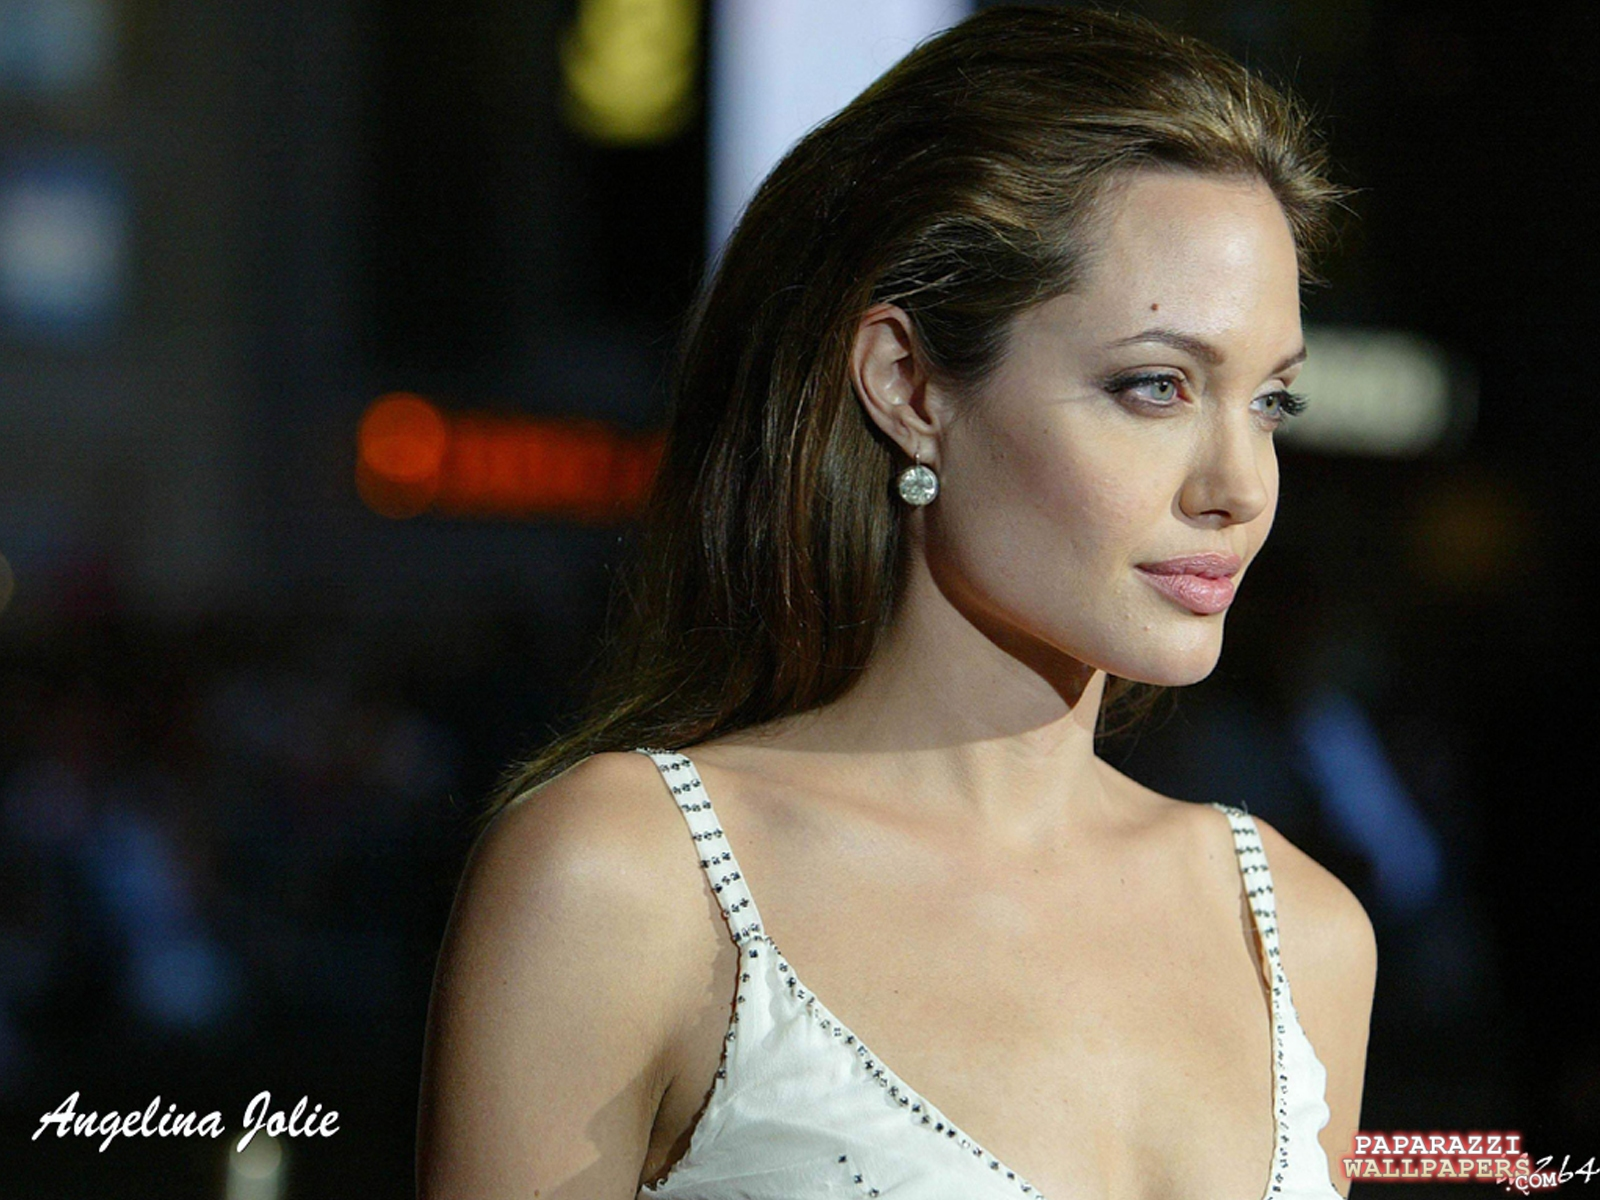 angelina jolie wallpapers 012